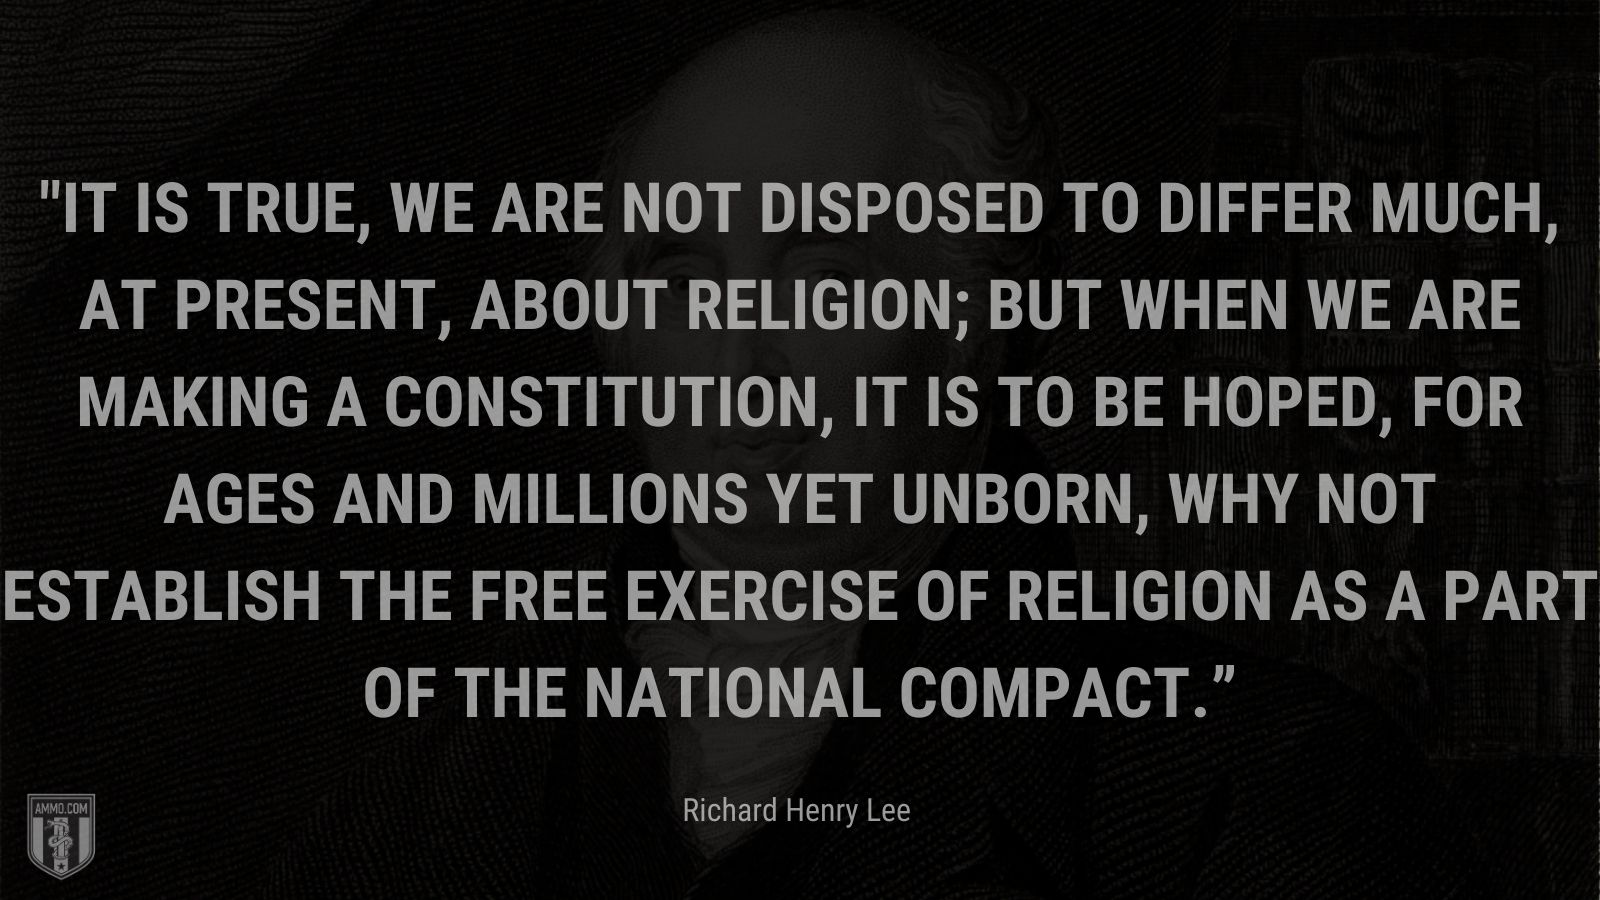 """""""It is true, we are not disposed to differ much, at present, about religion; but when we are making a constitution, it is to be hoped, for ages and millions yet unborn, why not establish the free exercise of religion as a part of the national compact."""" - Richard Henry Lee"""